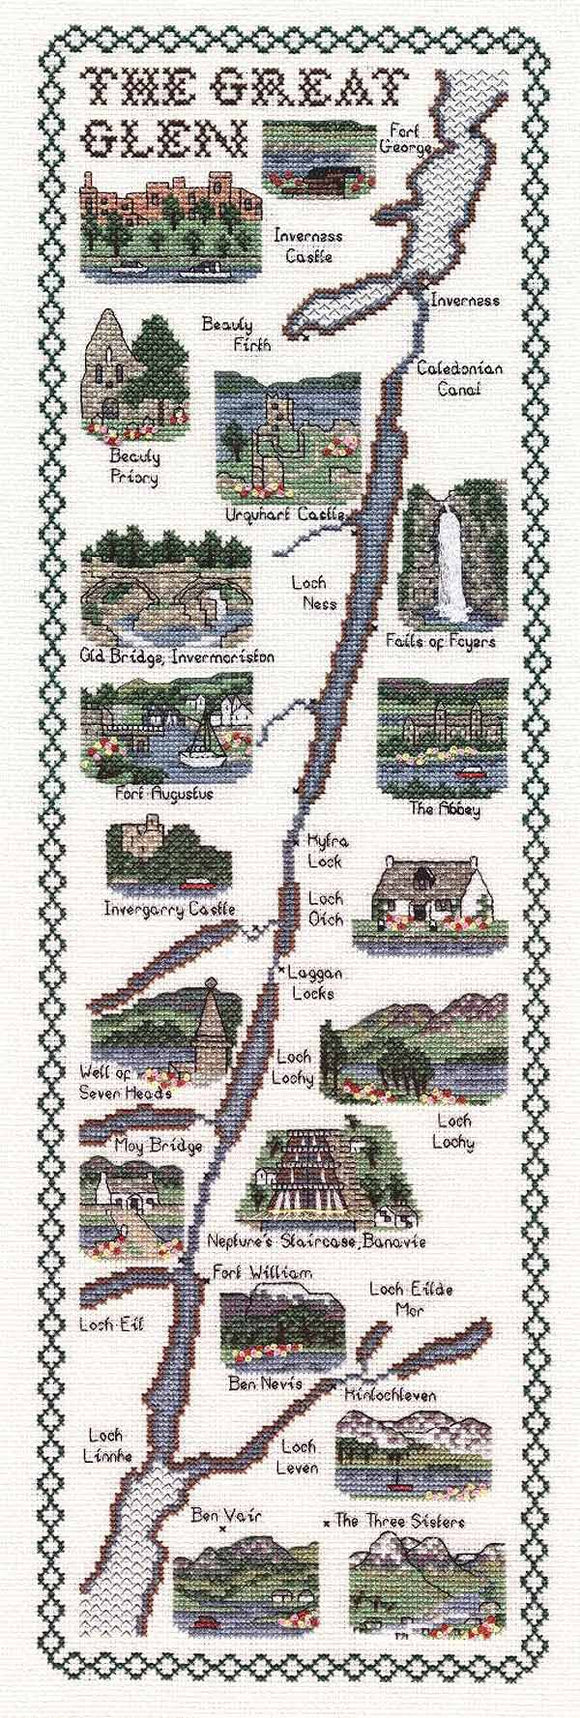 The Great Glen Map Cross Stitch Kit by Classic Embroidery